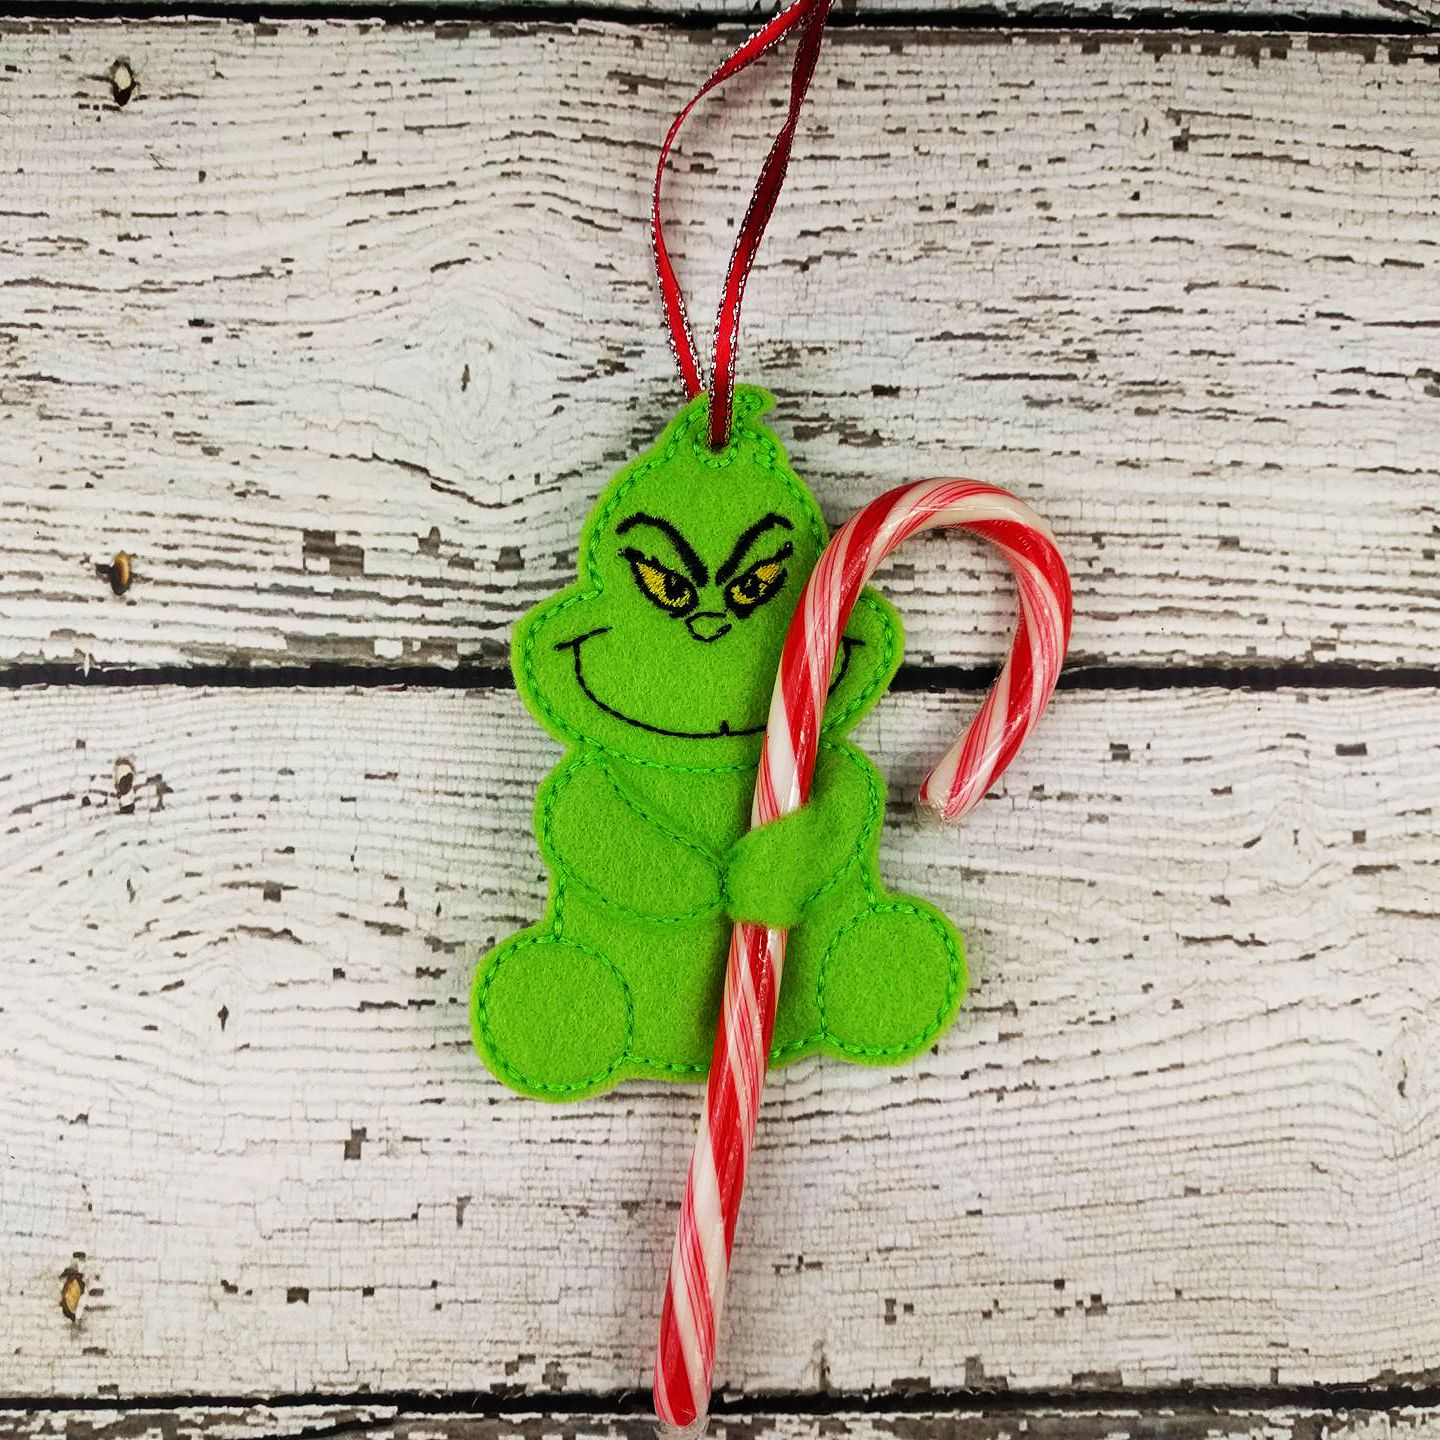 Don T Be A Grinch These Candy Cane Holder Ornaments Are So Much Fun Give As A Gift Grinch Christmas Party Christmas Ornaments Grinch Christmas Decorations